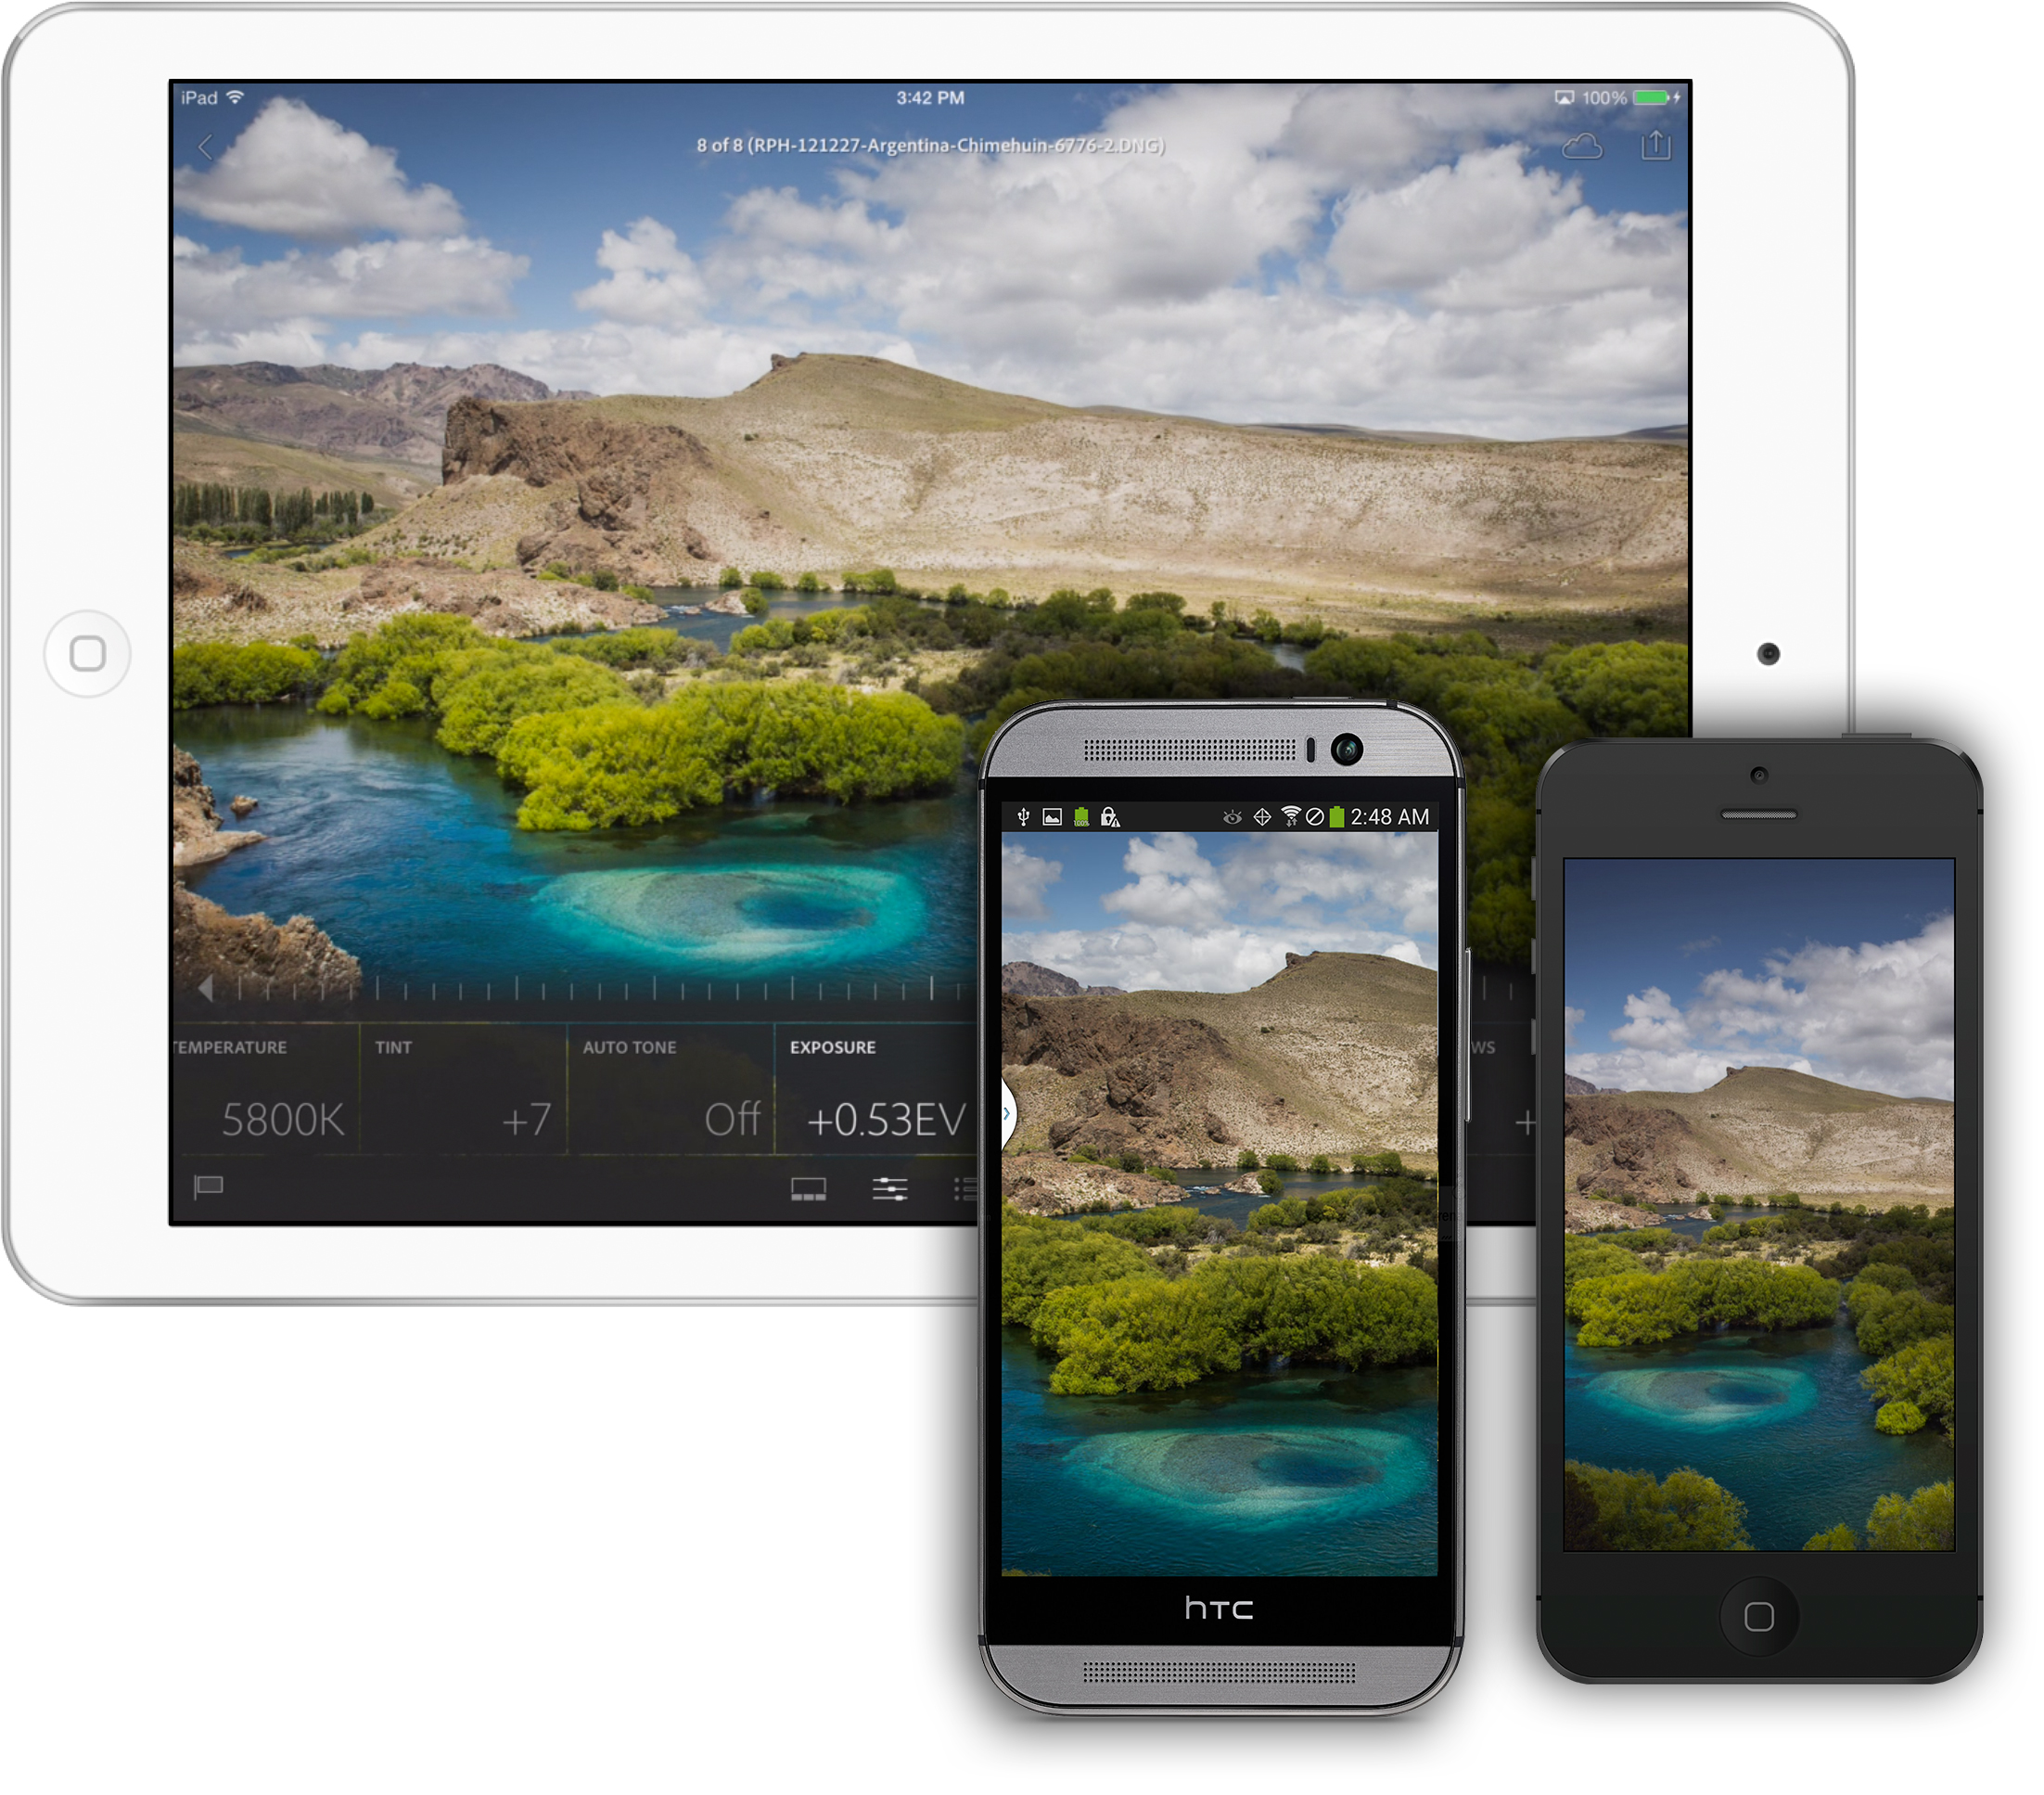 Adobe Lightroom Mobile finally launches for Android